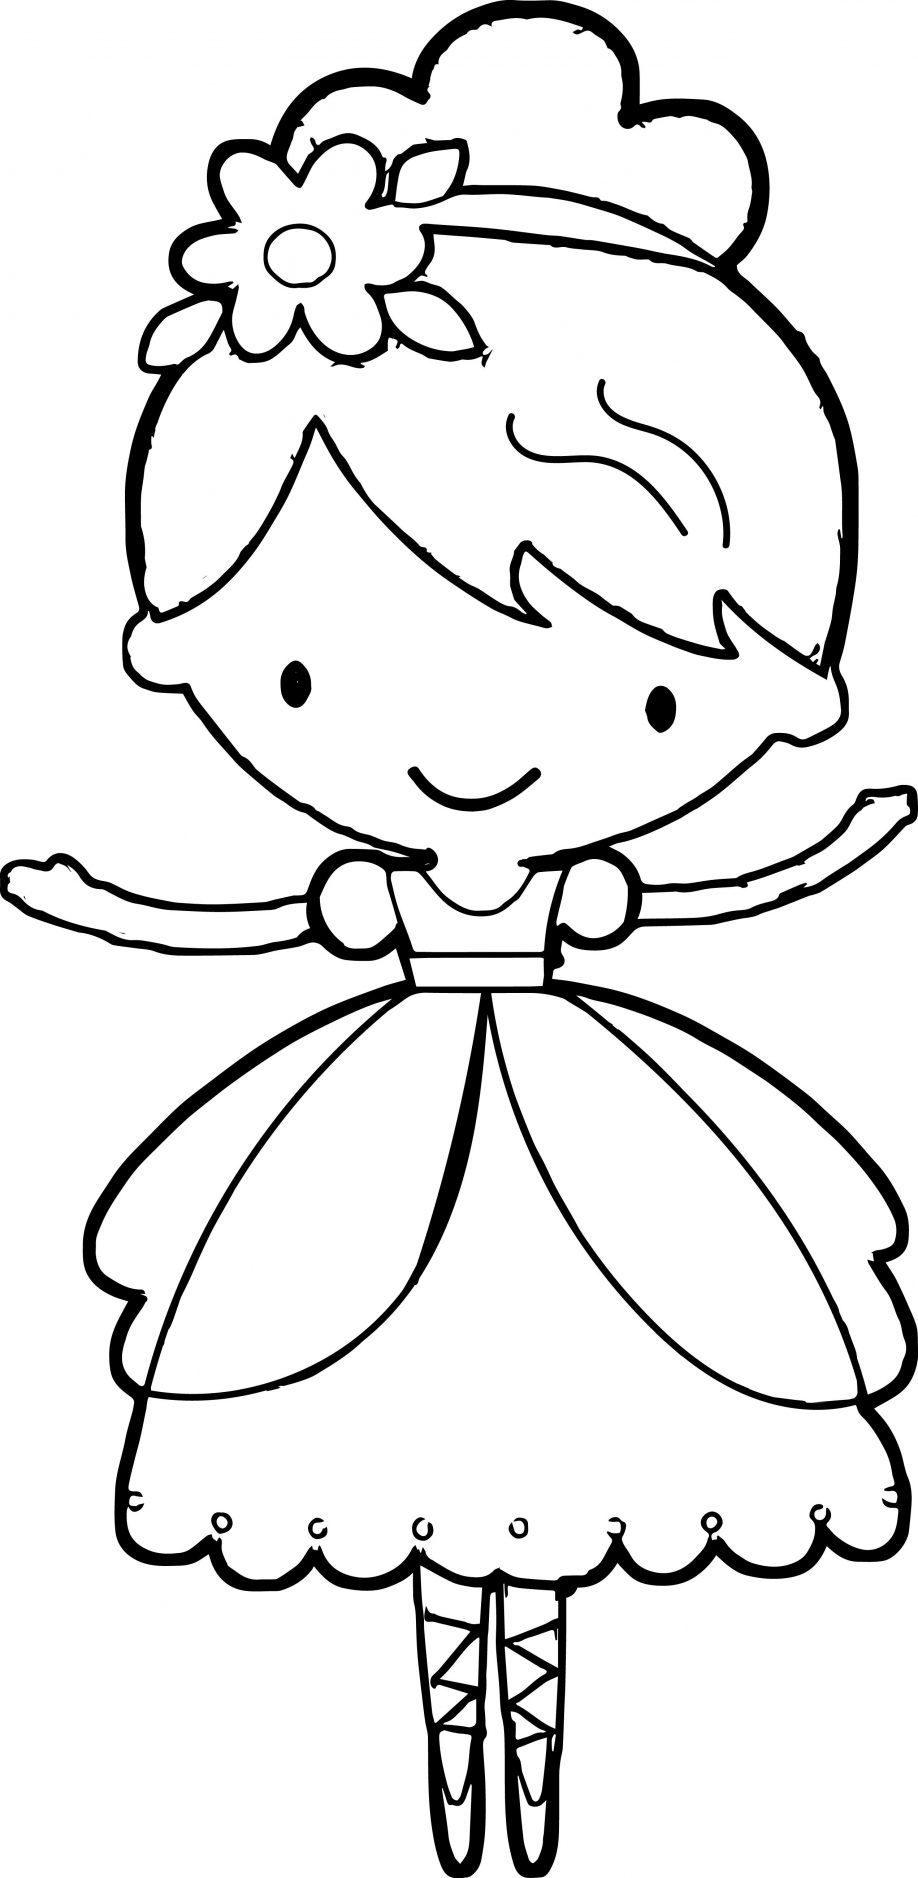 918x1878 Energy Ballerina Colouring Page Coloring Pages With Ballet